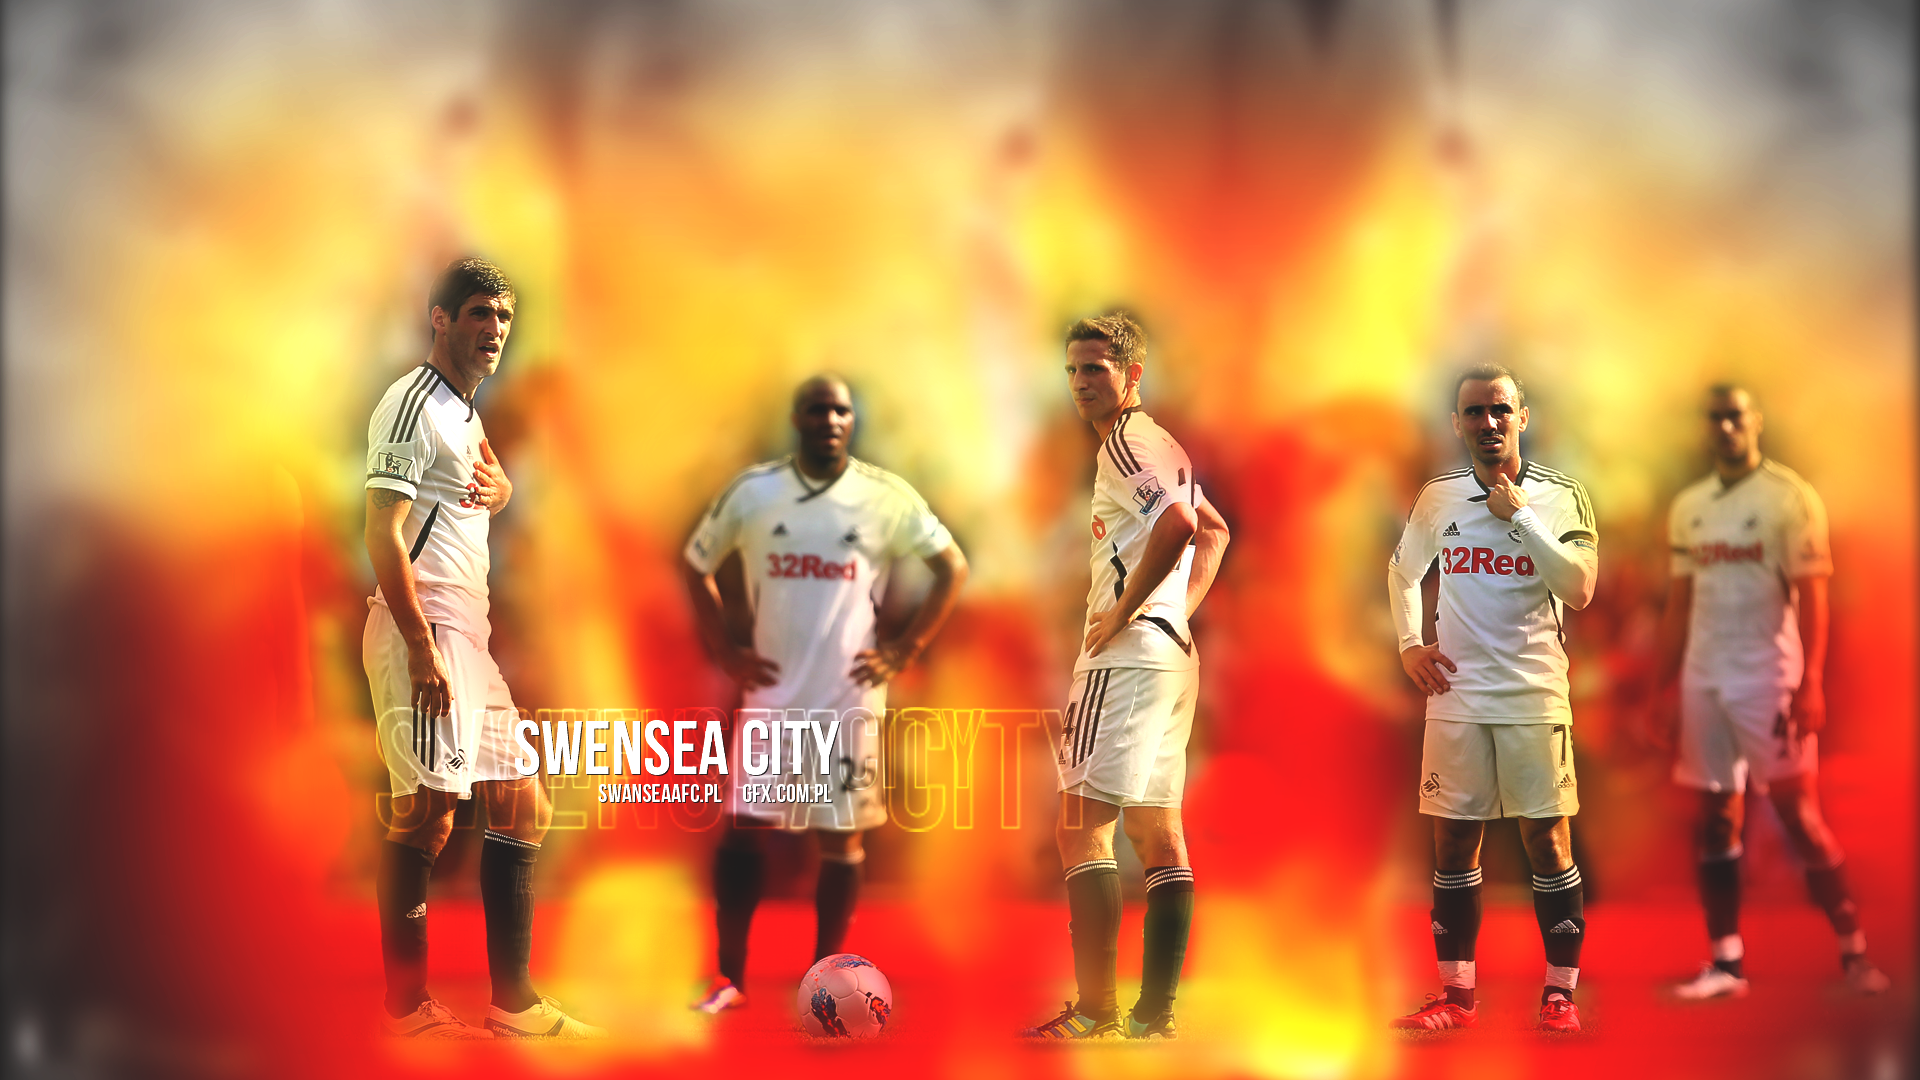 Swansea City Wallpaper #1 By PodolsQai On DeviantArt